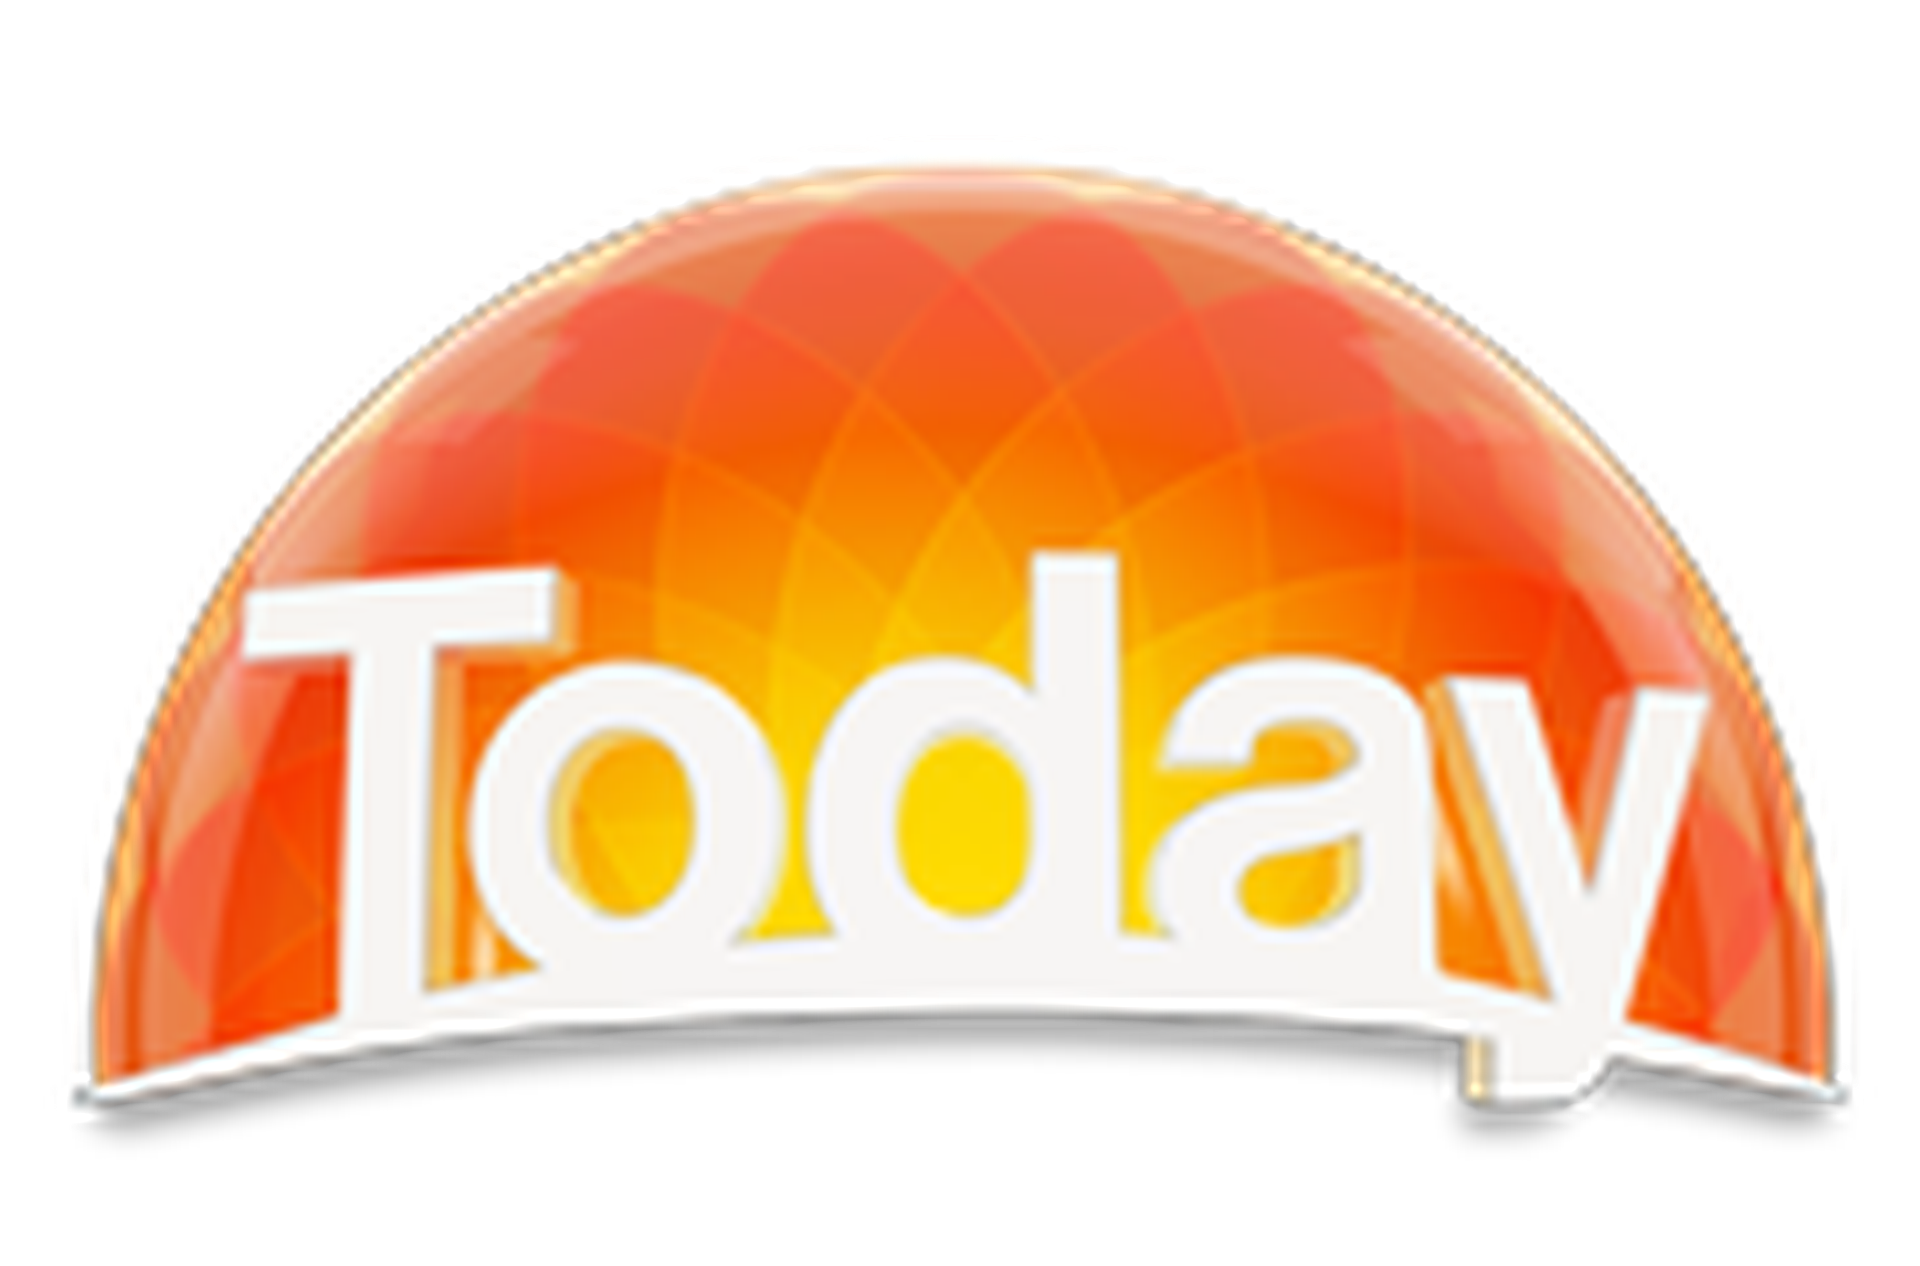 watch today 2018 catch up tv